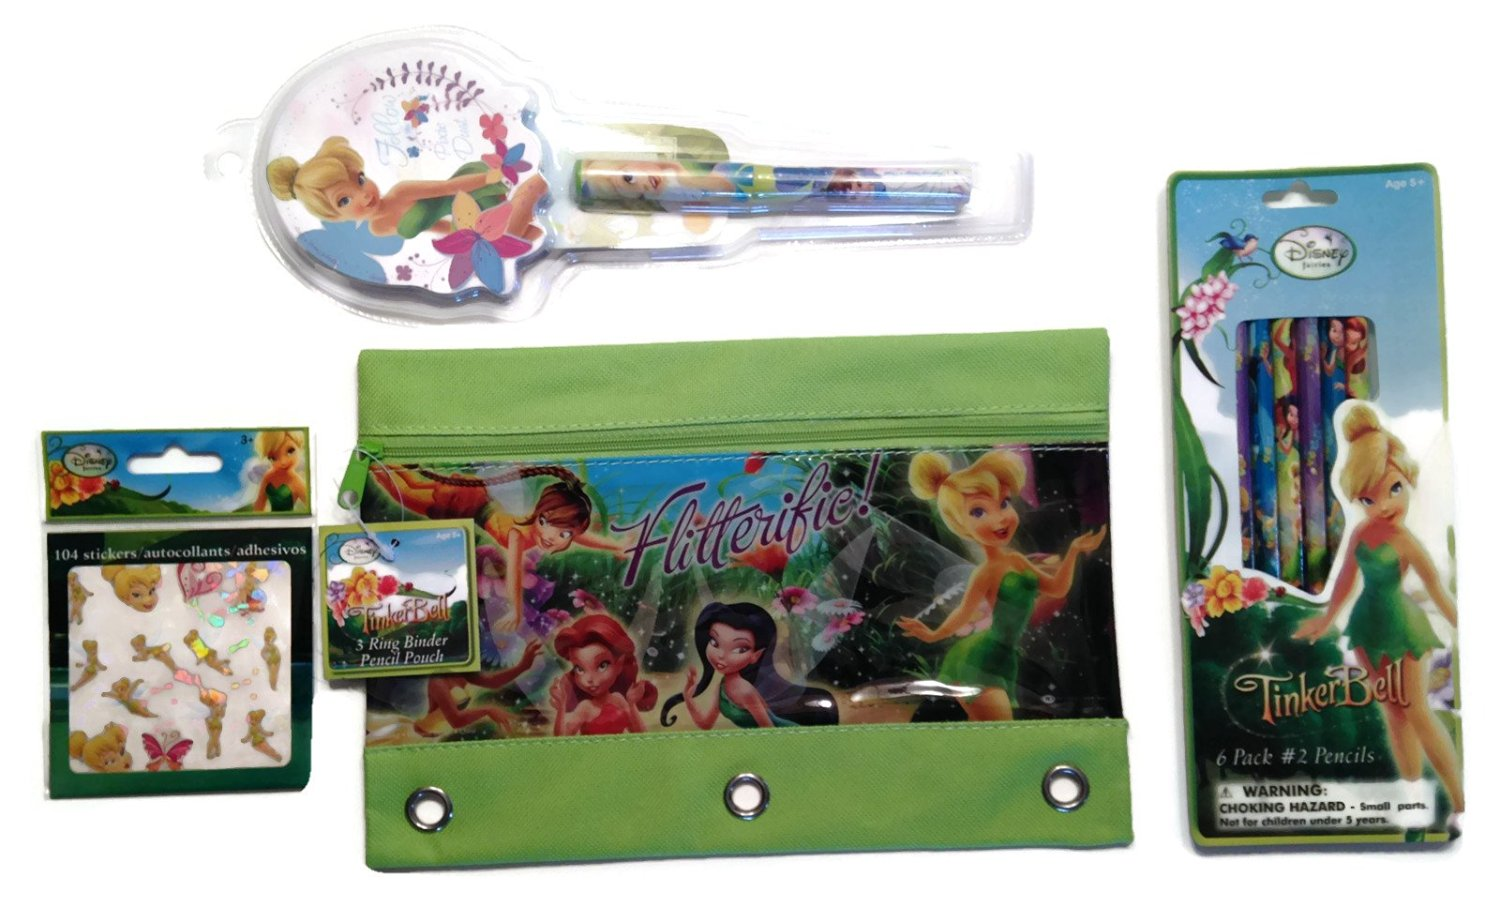 Disney Tinkerbell Flitterific Fairies Back to School Supply Pencil Pouch Bundle - Four Items: One 3 Ring Binder Pencil Pouch, One Book of 104 Autocollants Tinkerbell Stickers, One Pack of 6 Fairy Pencils, One Pixie Dust Notepad & Pen Set